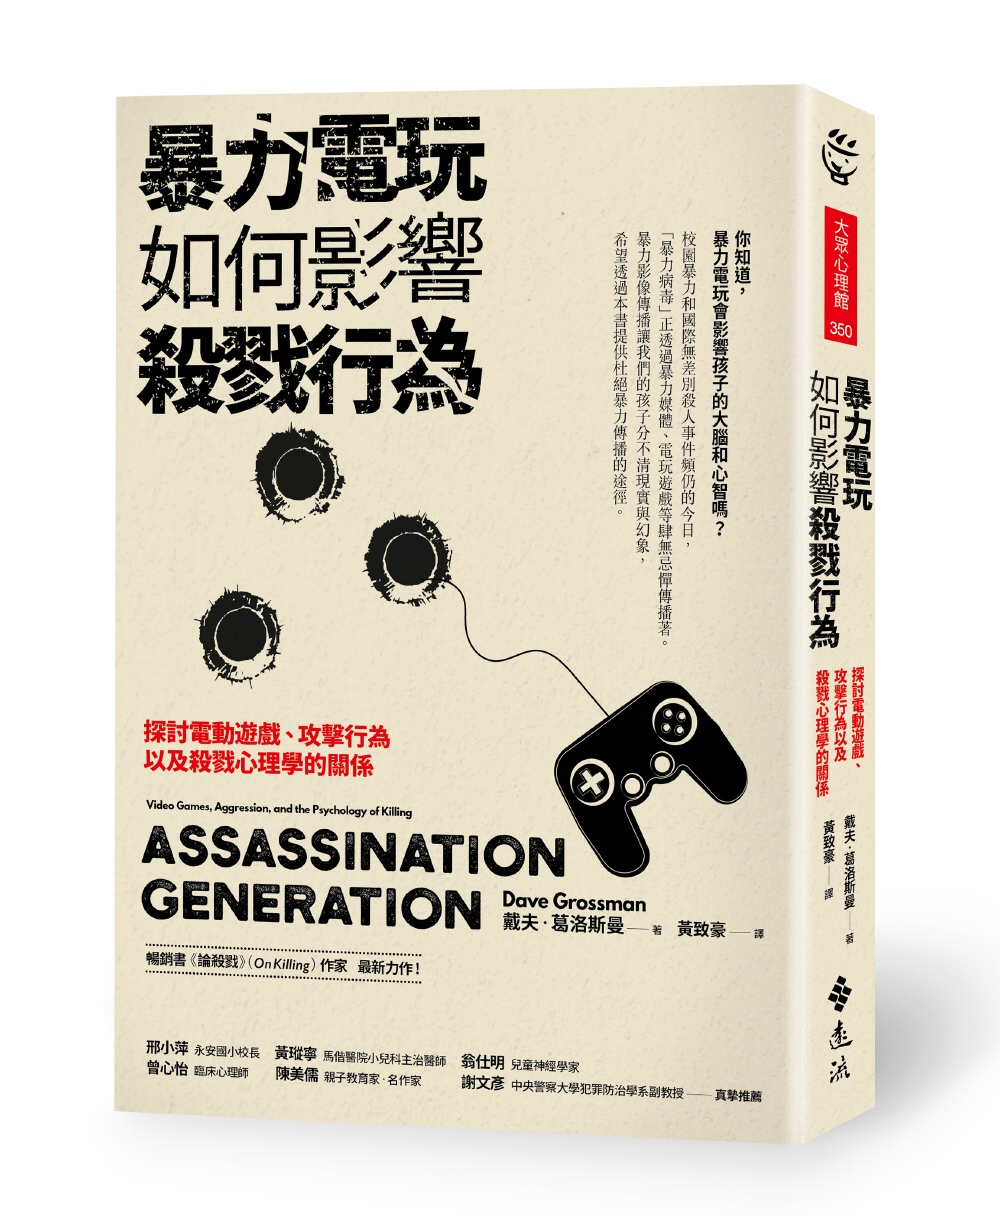 assassination generation video games aggression and the psychology of killing